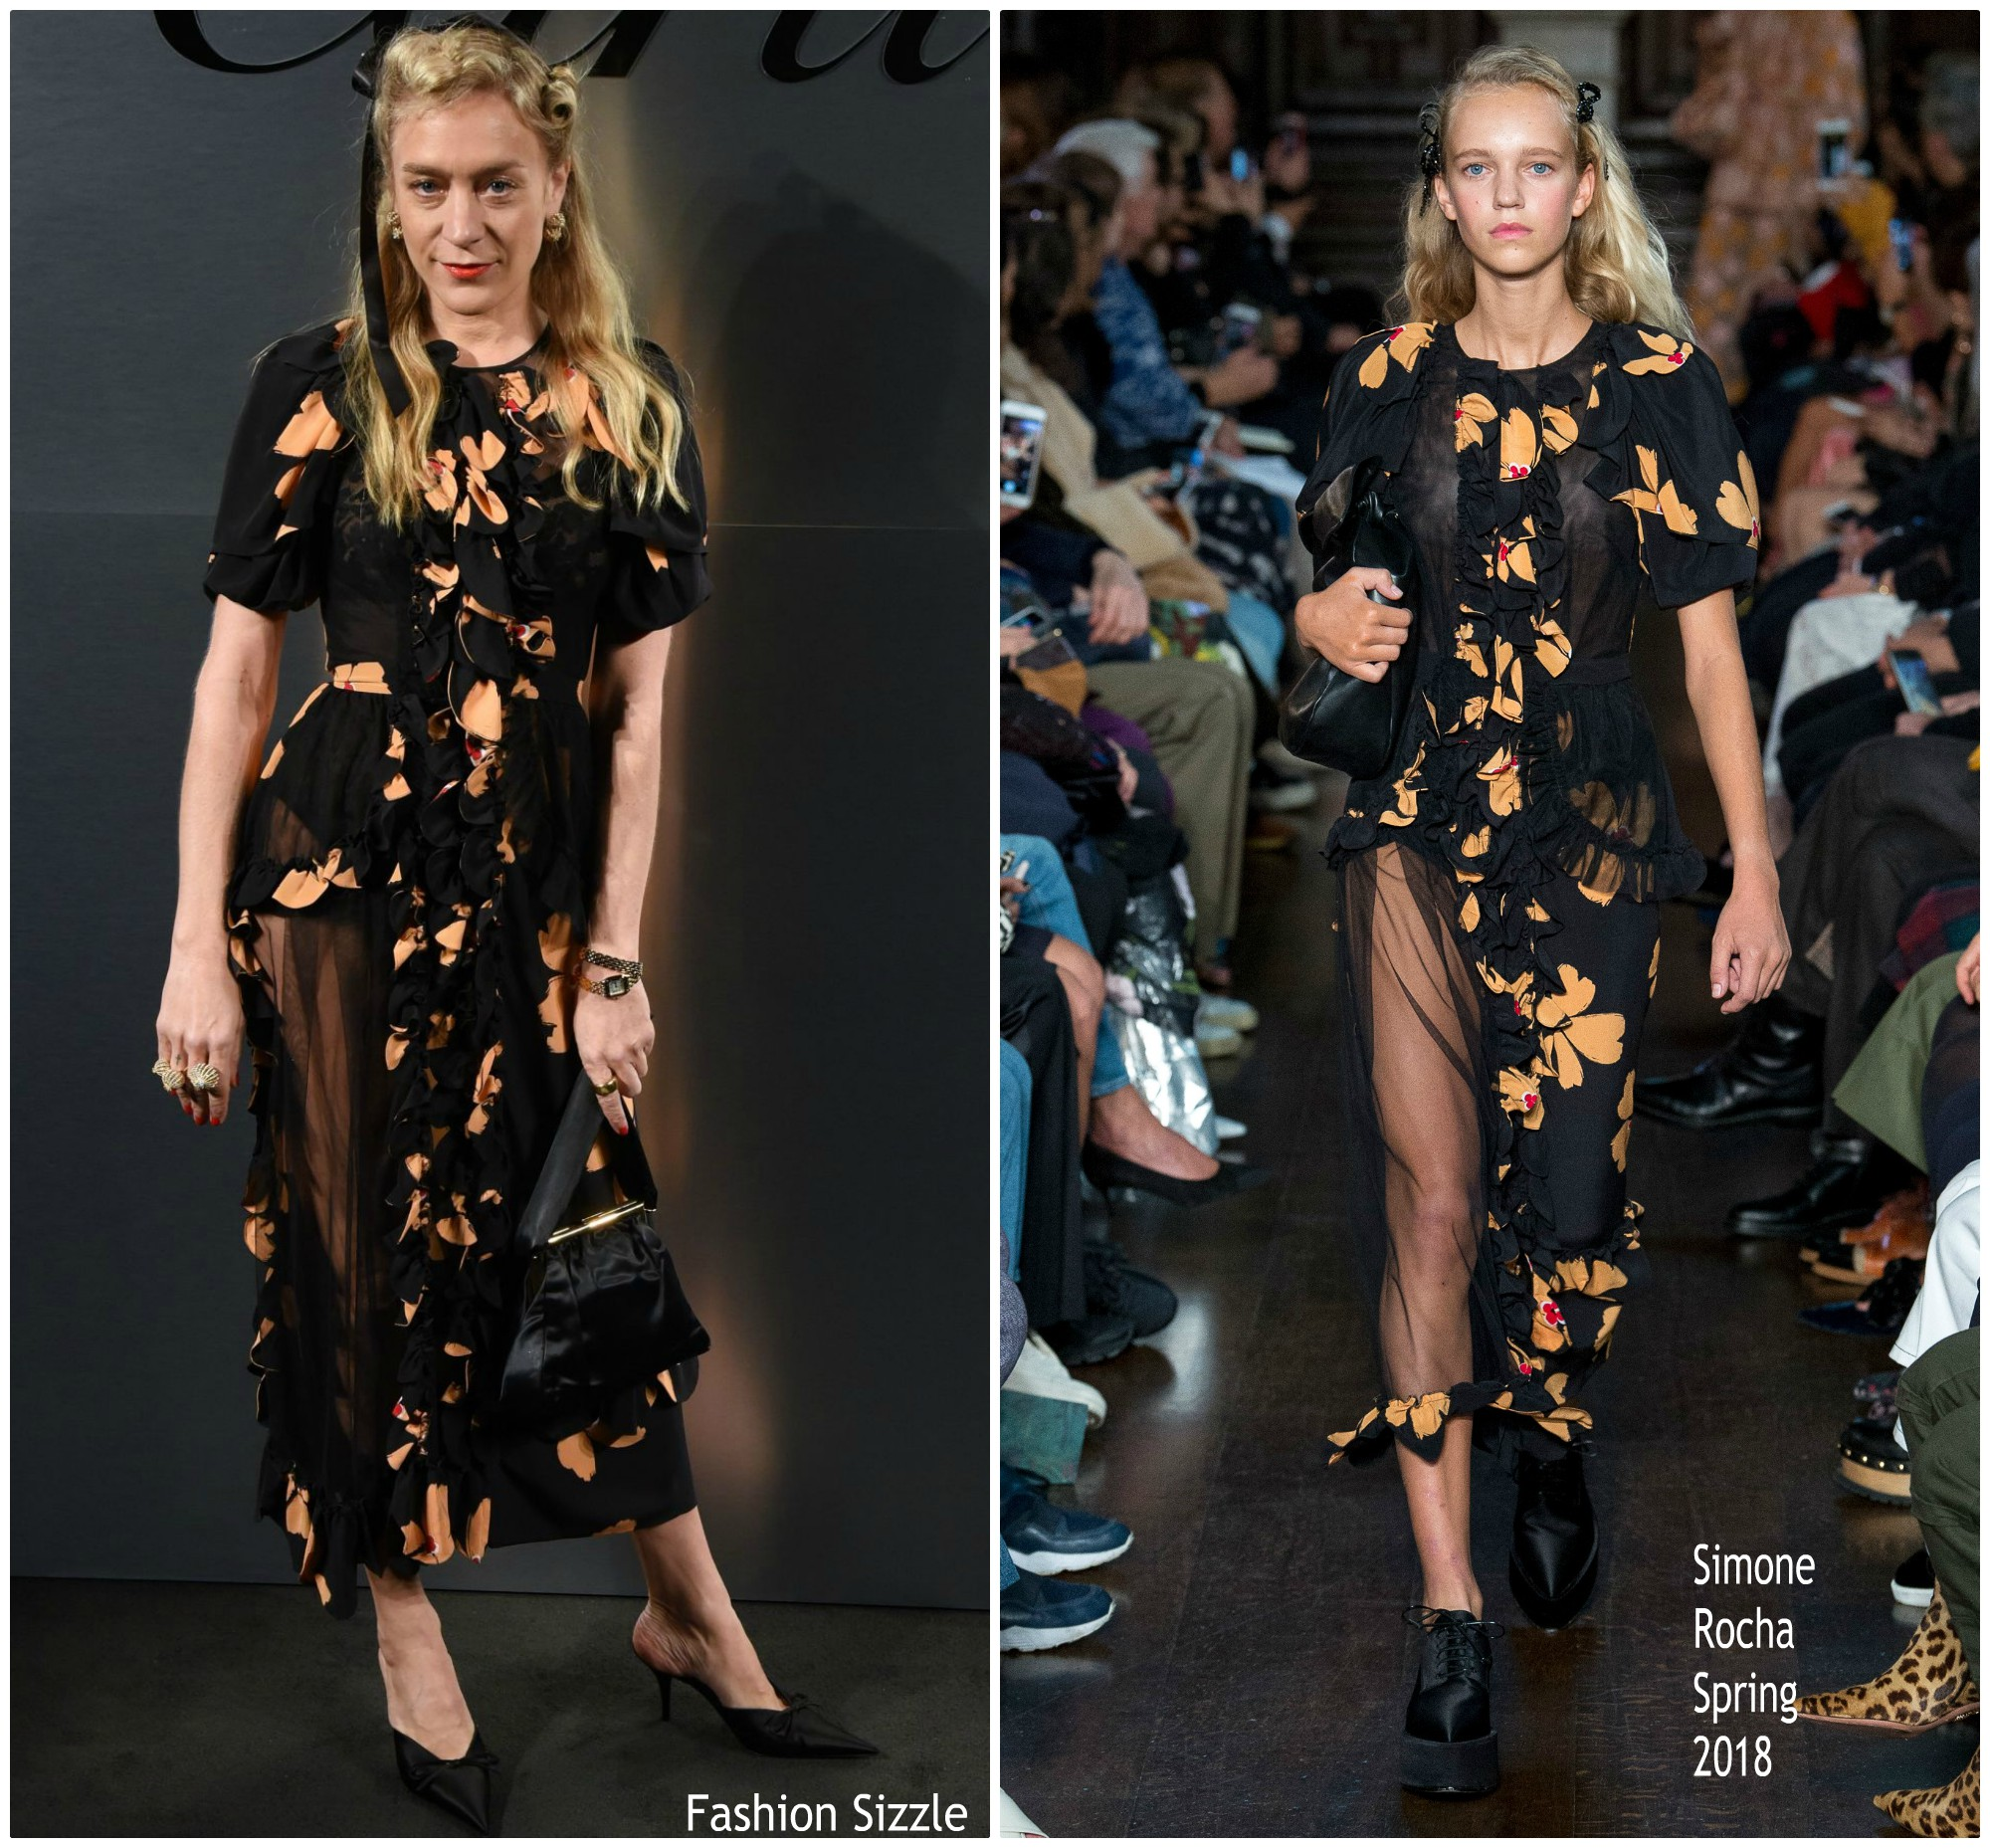 chloe-sevigny-in-simone-rocha-bold-fearless-santos-de-cartier-watch-launch